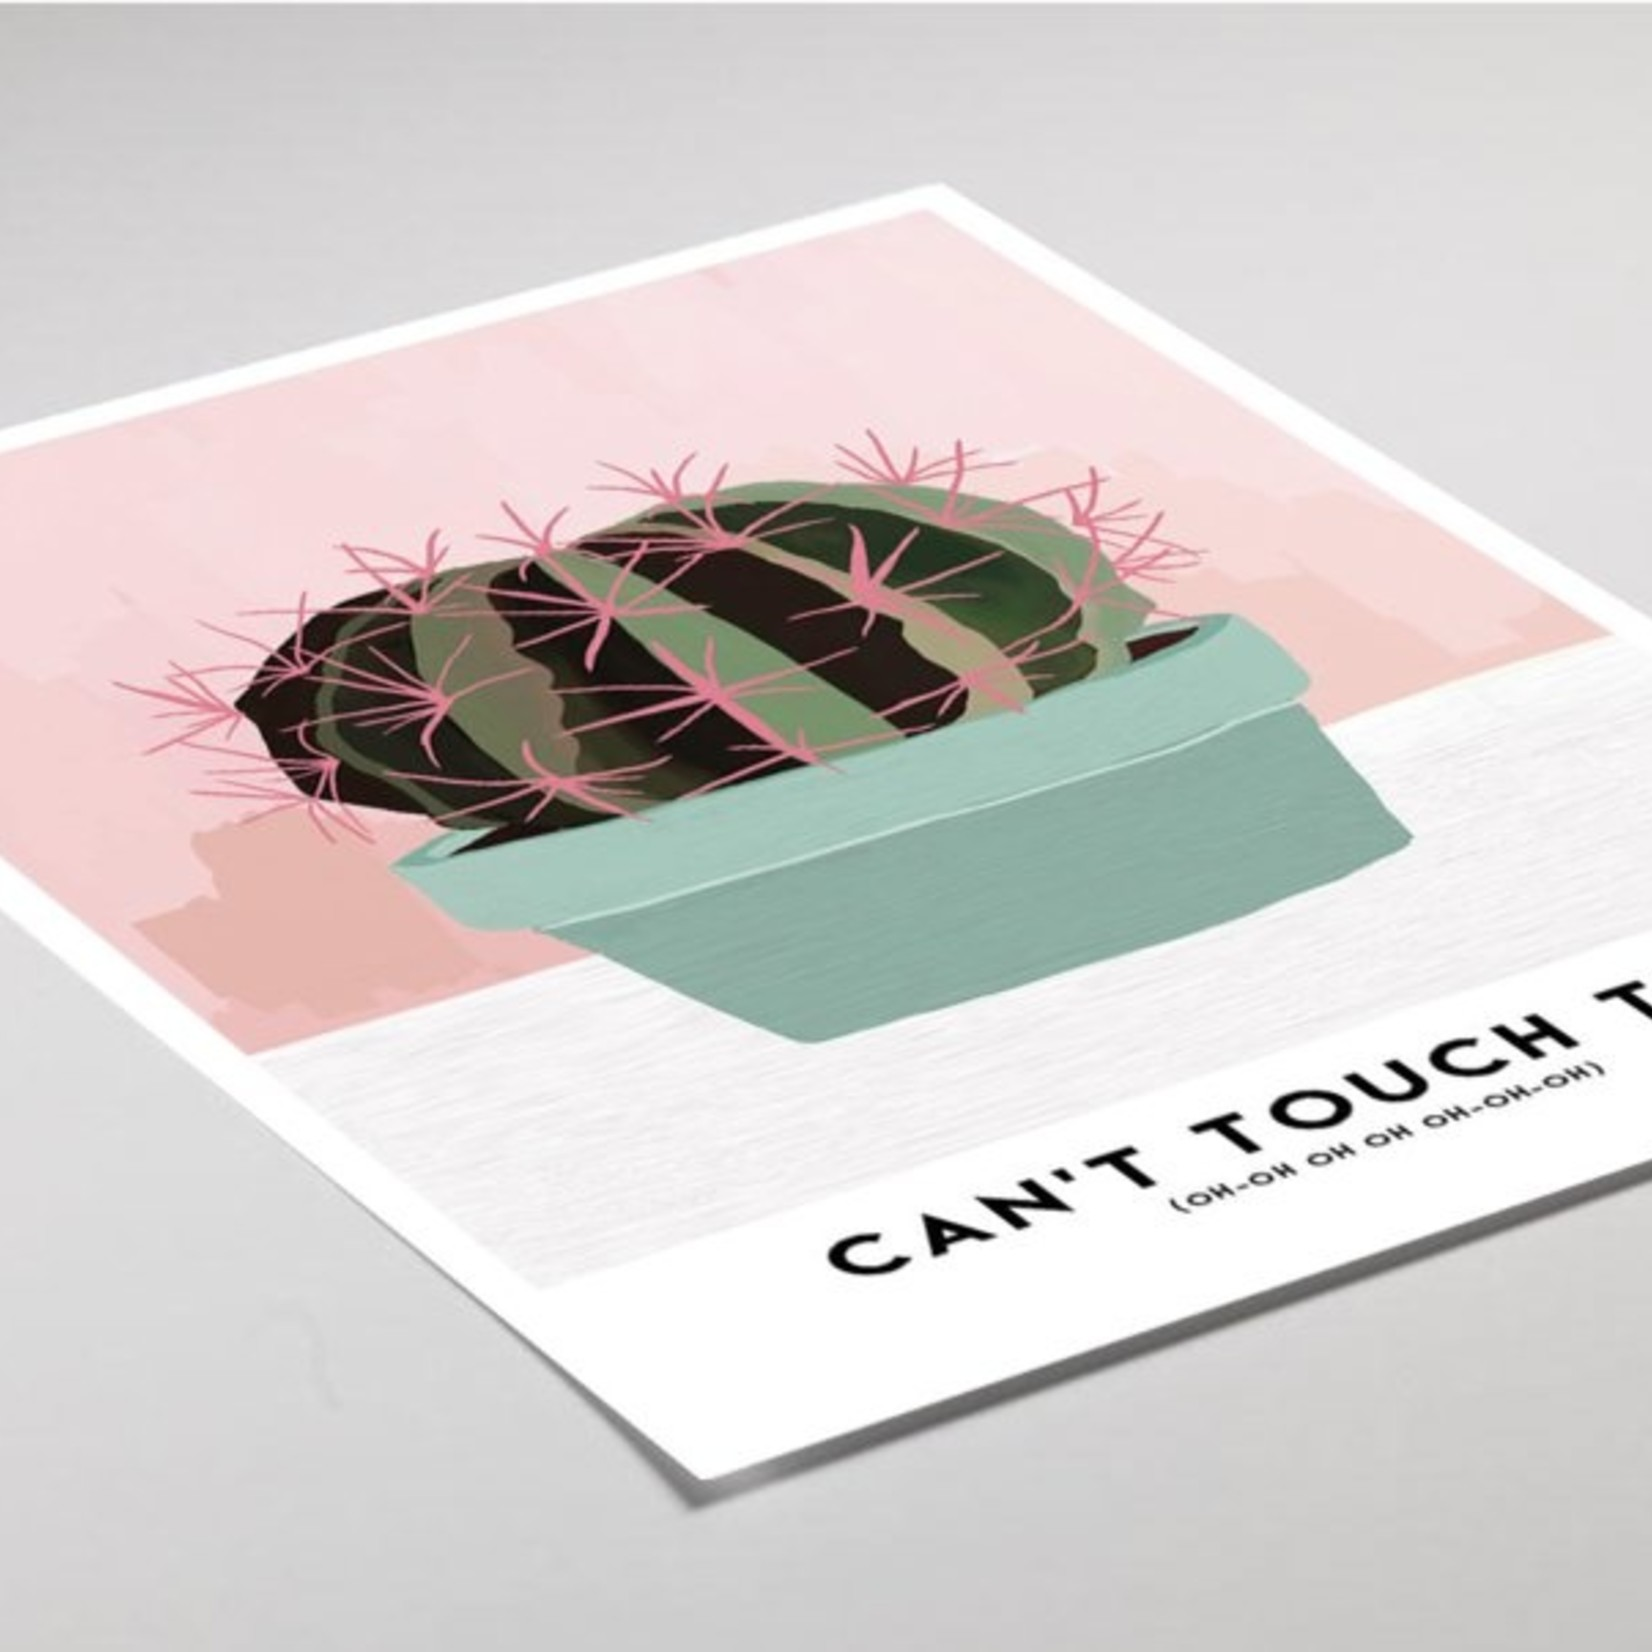 Studio Hoeked Poster Touch